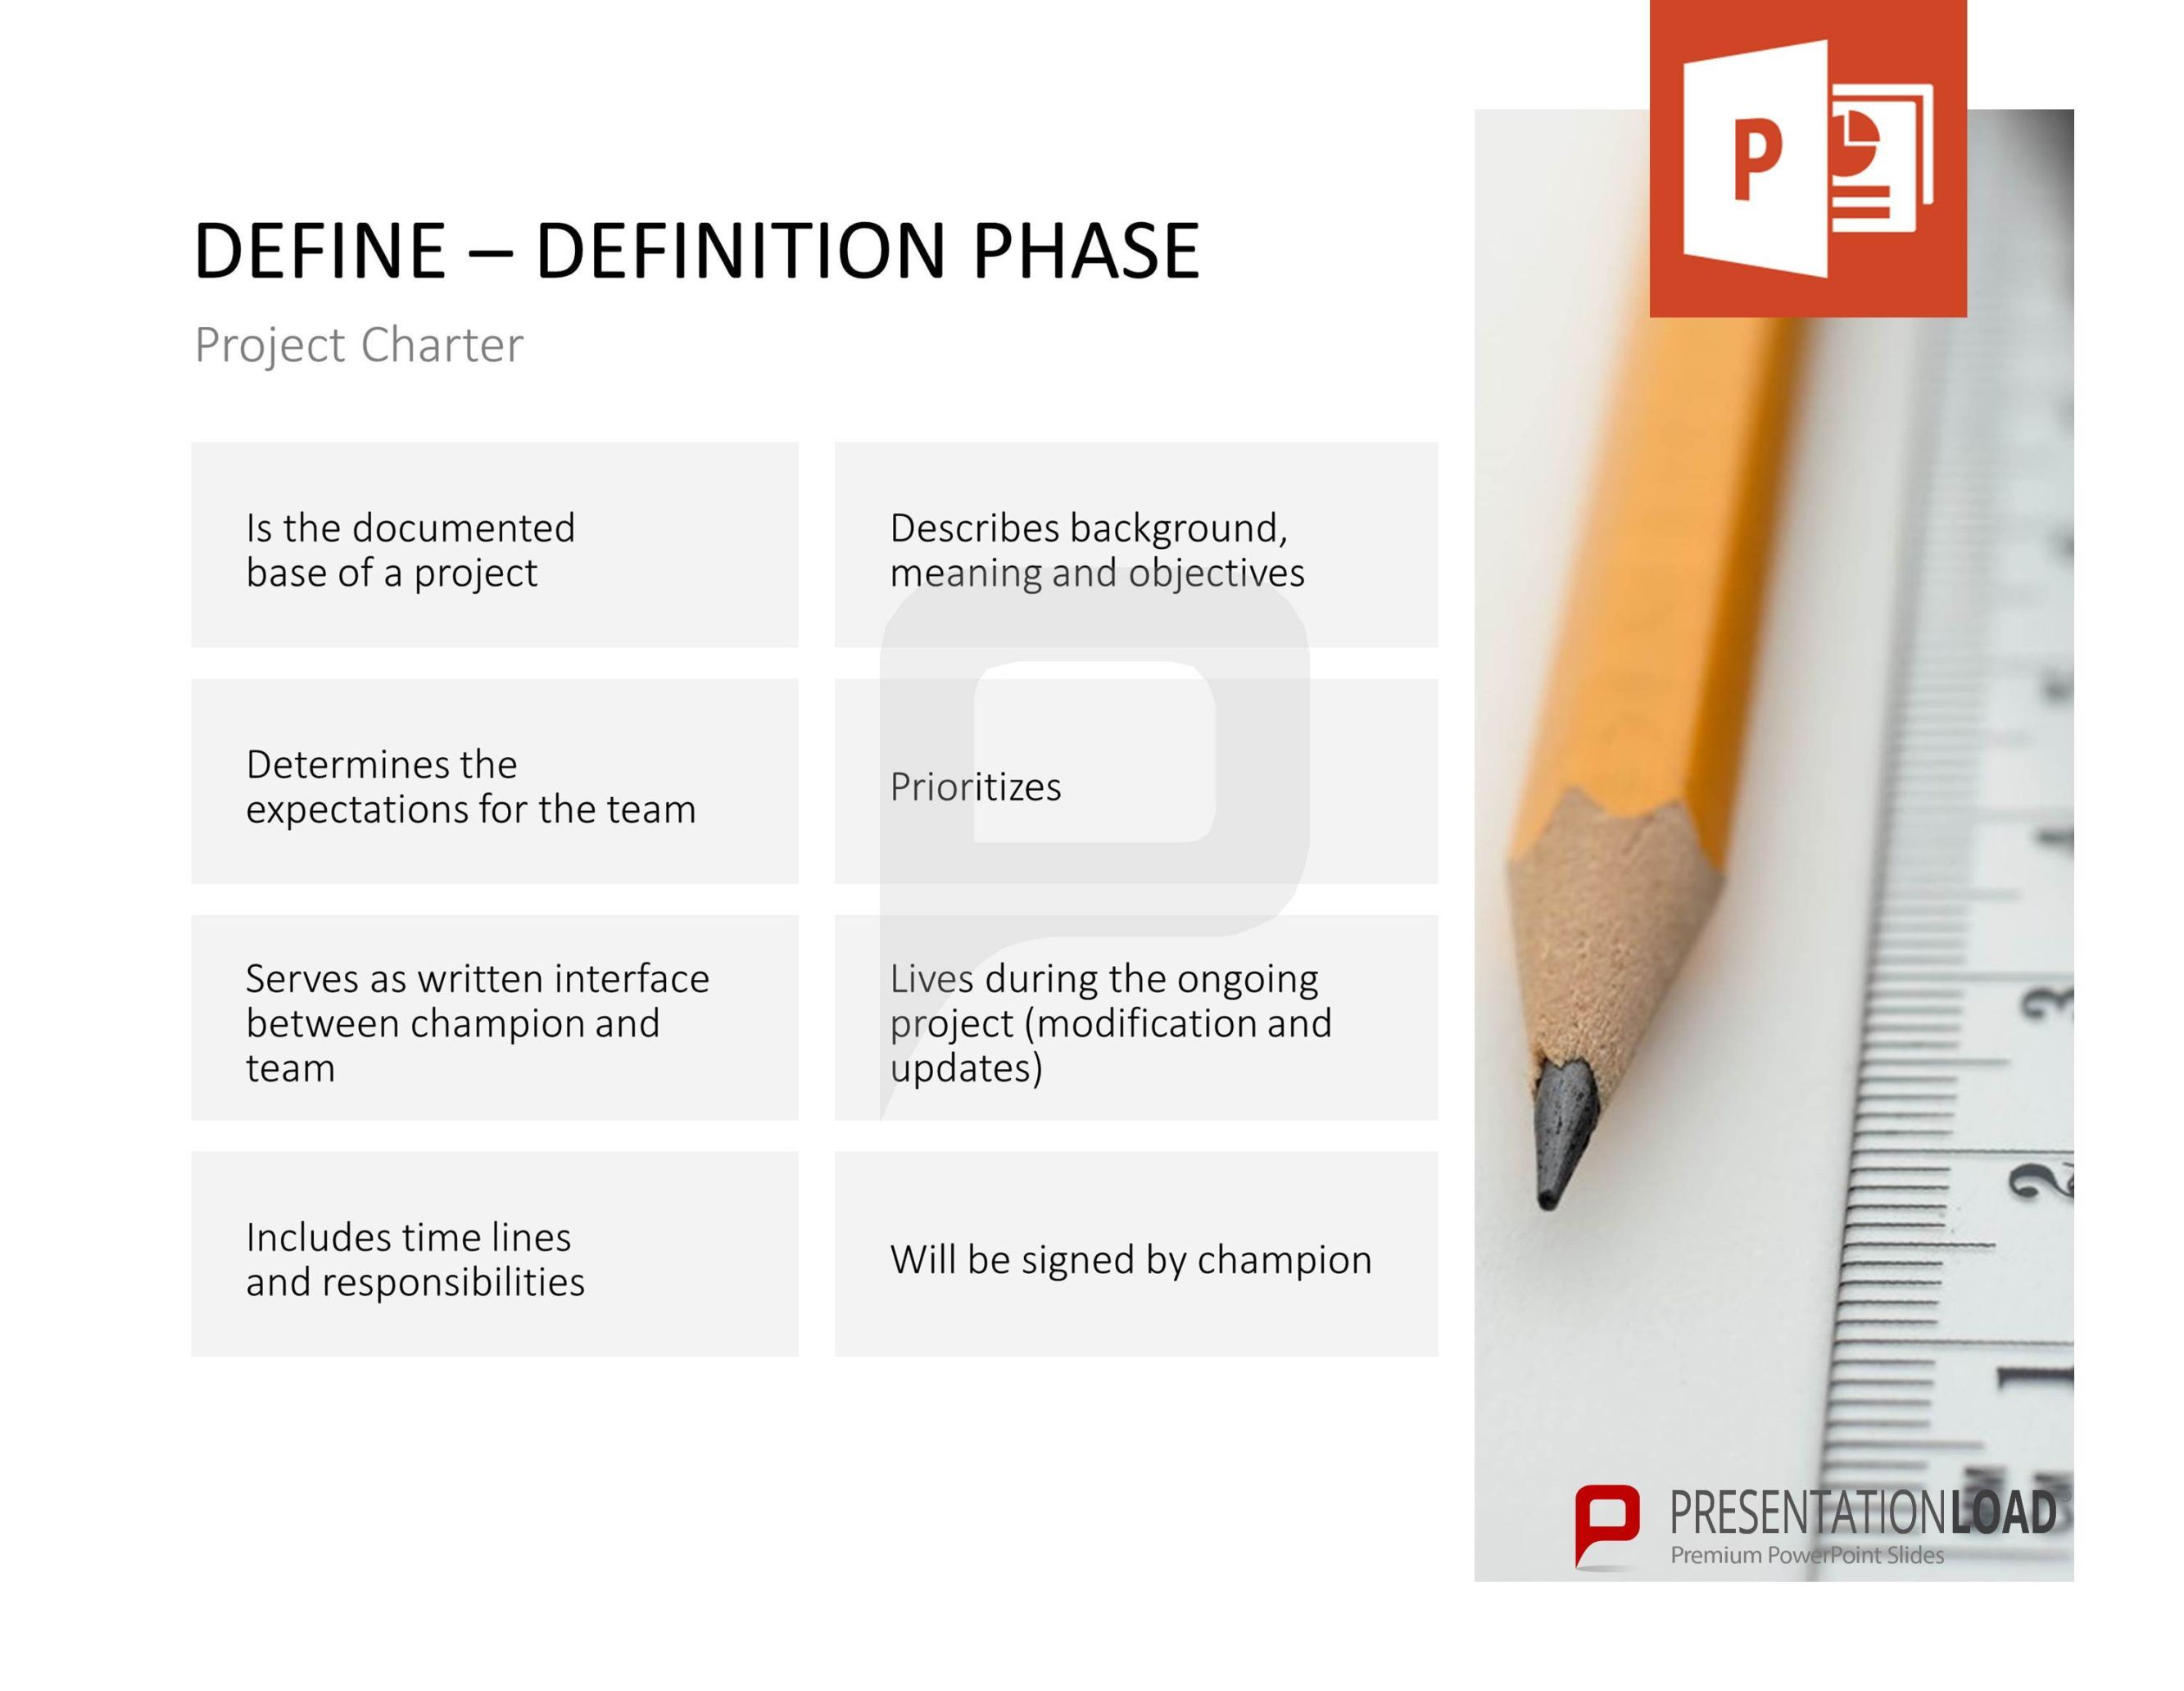 Project Charter Professional Powerpoint Presentation Lean Six Sigma Statistics Definitions Diagram